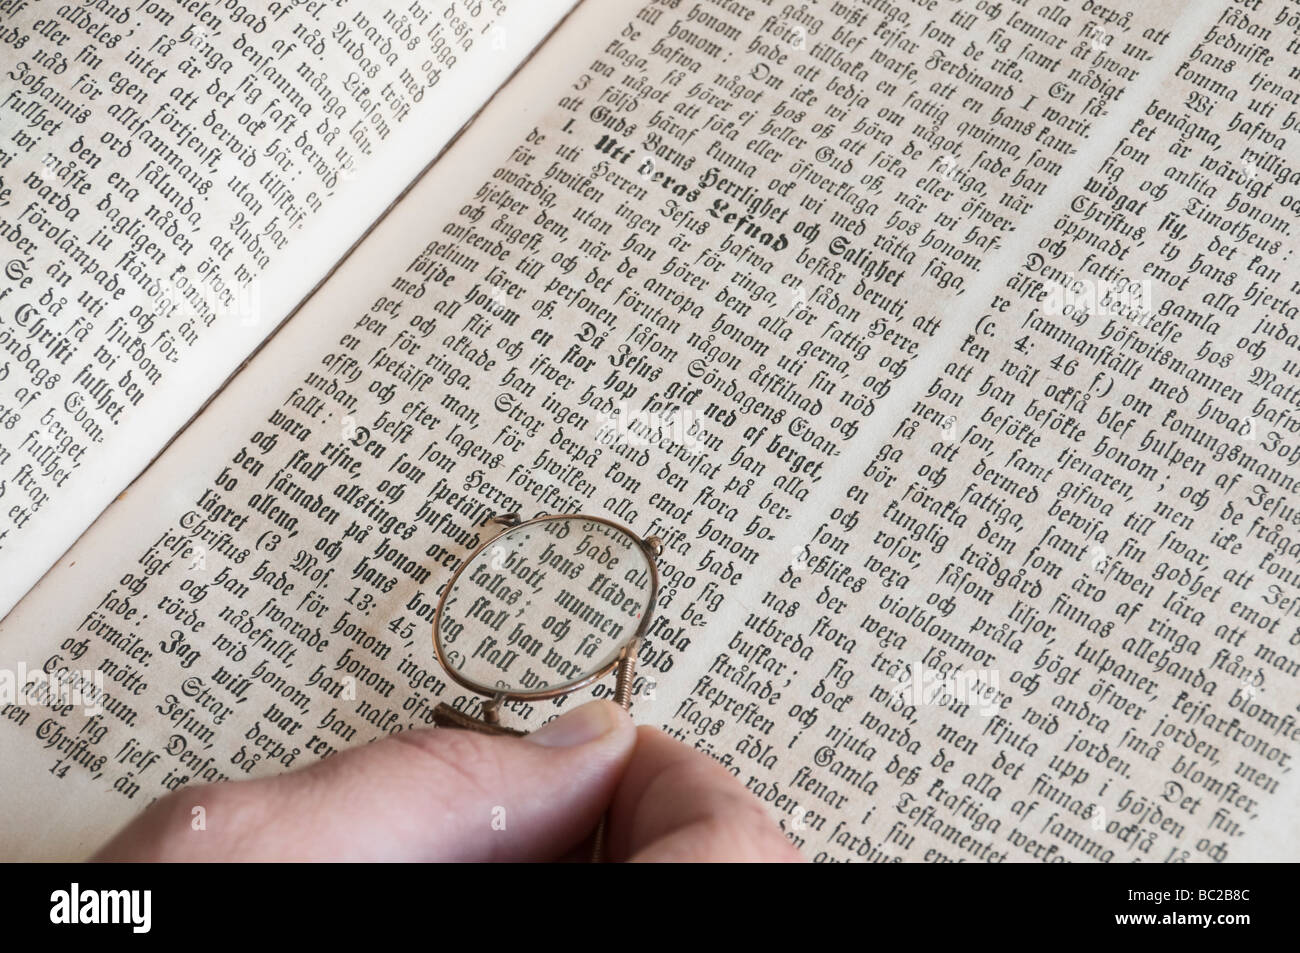 Hand holding a pair of pince-nez eye-glasses over Swedish bible. Stock Photo